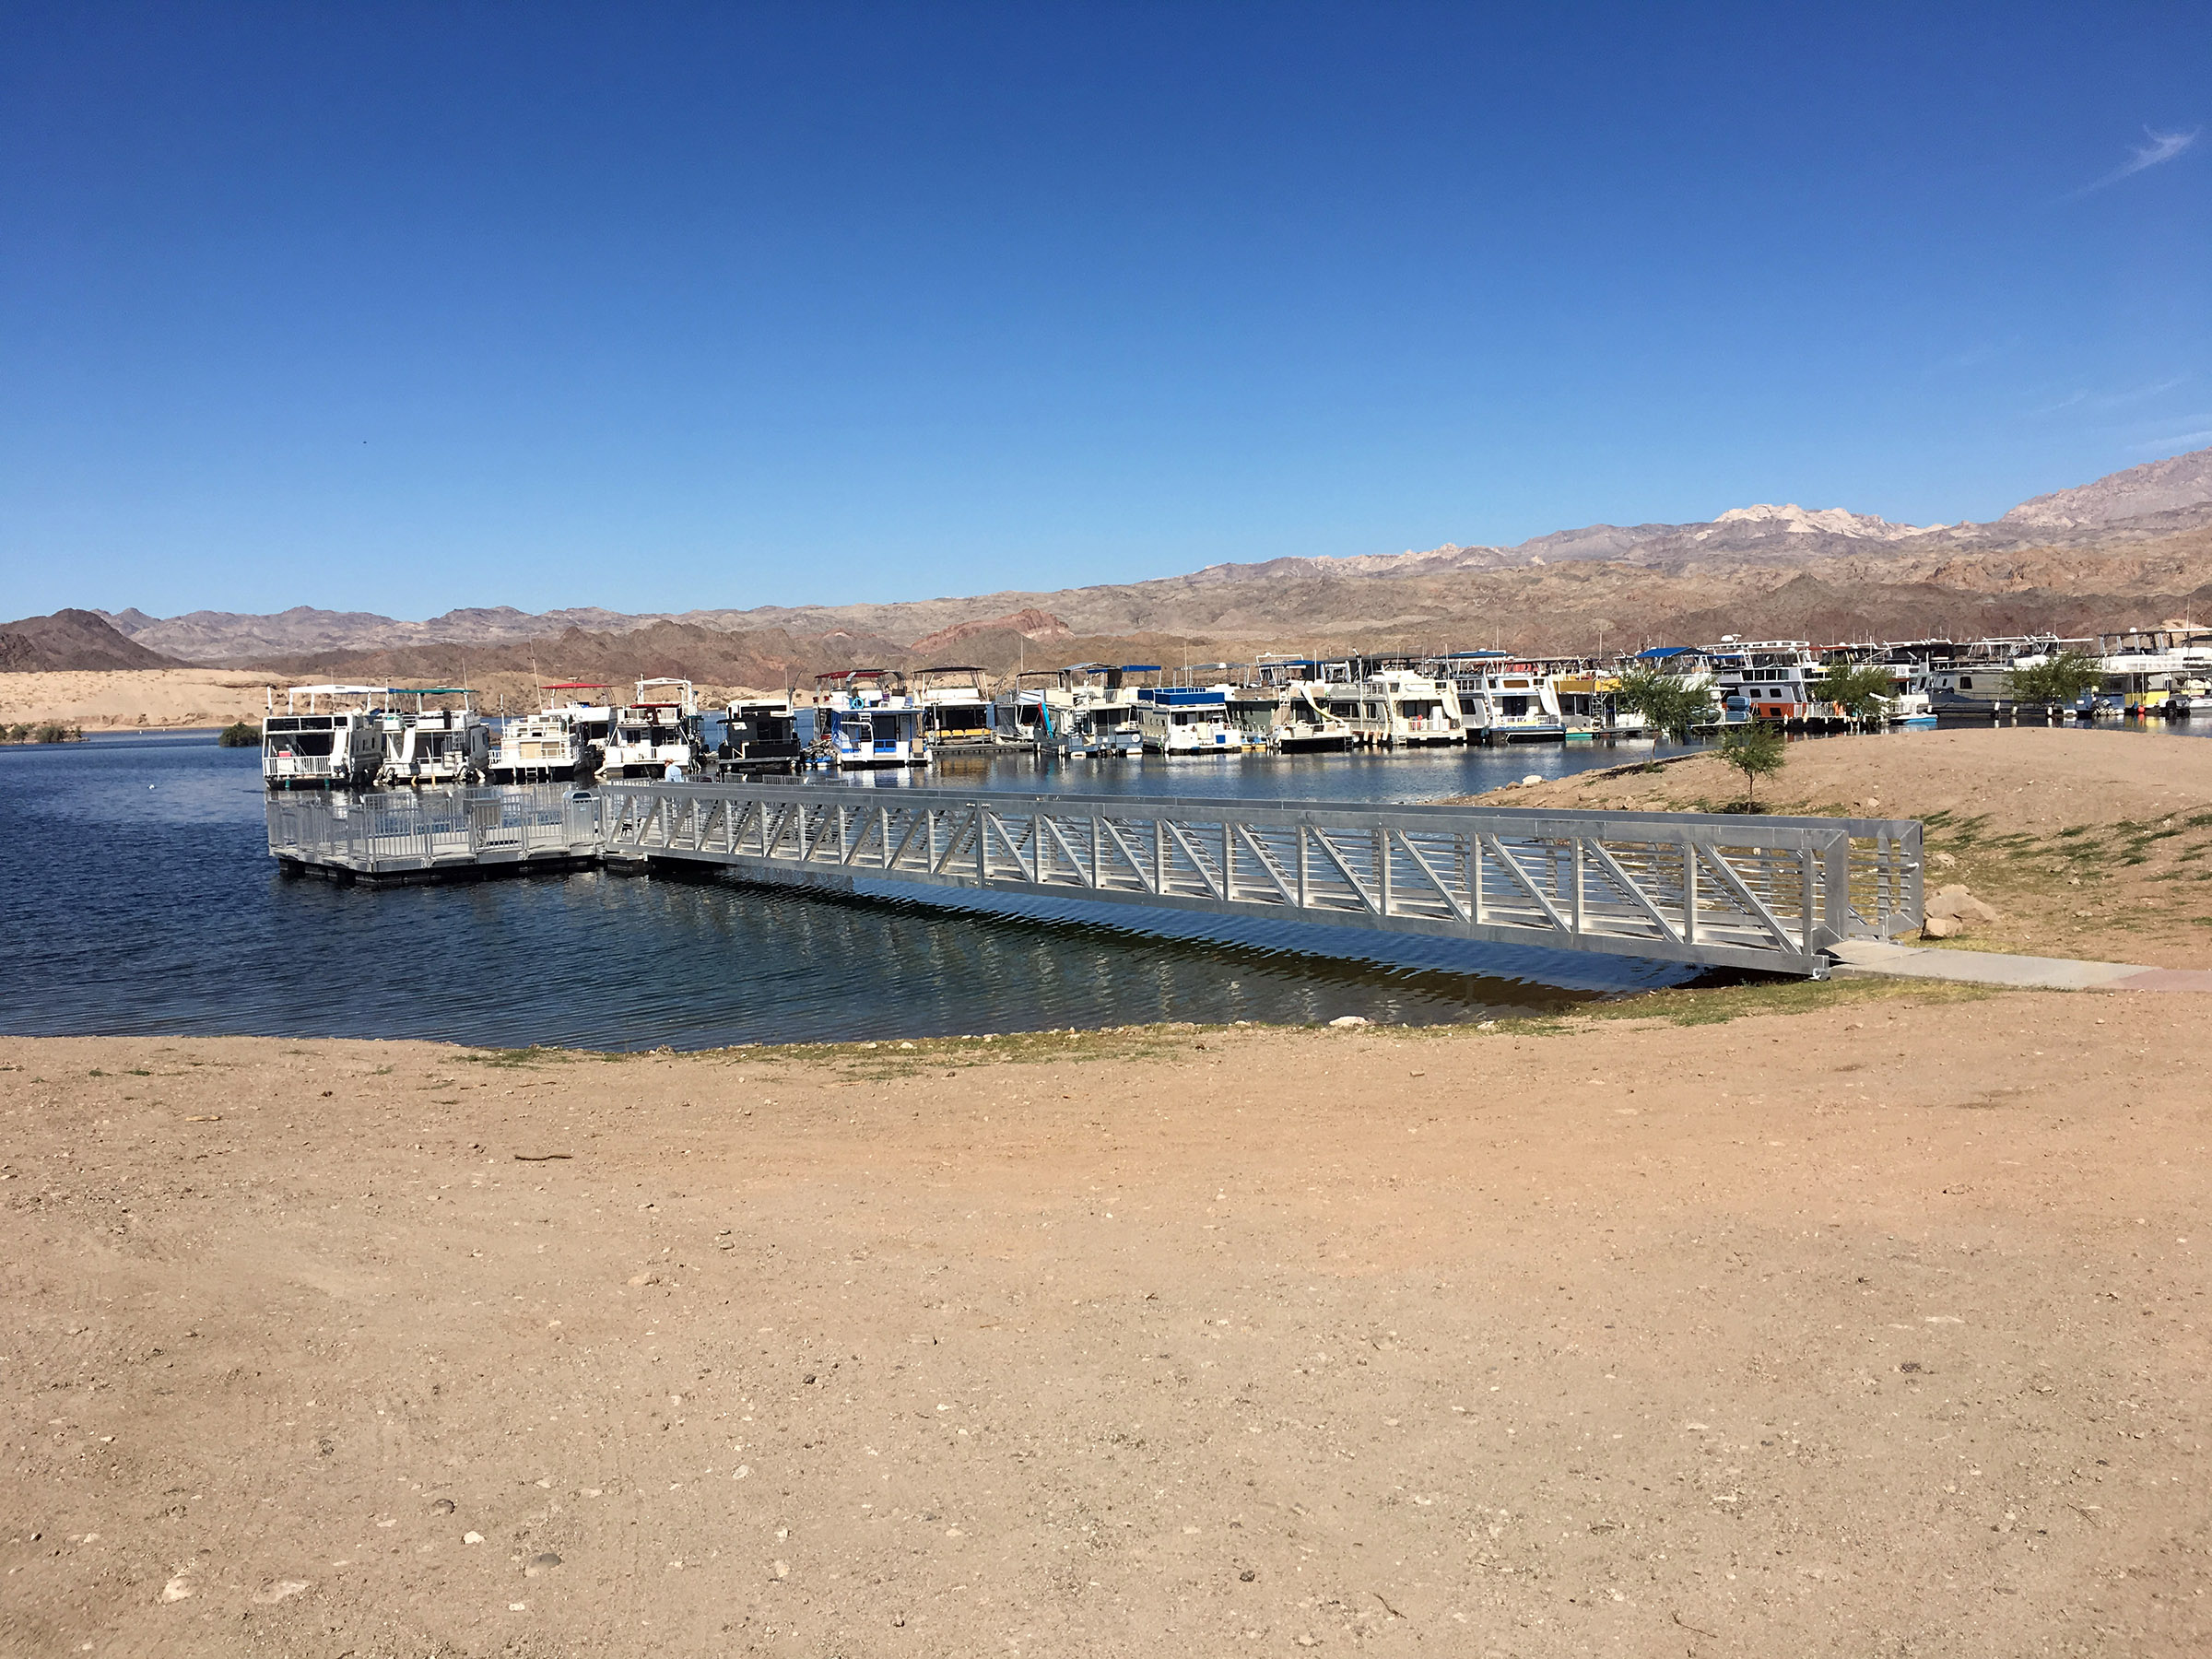 Sandy beach leads to accessible fishing pier. Marina is behind with many houseboats moored. Rocky hills are in the background.